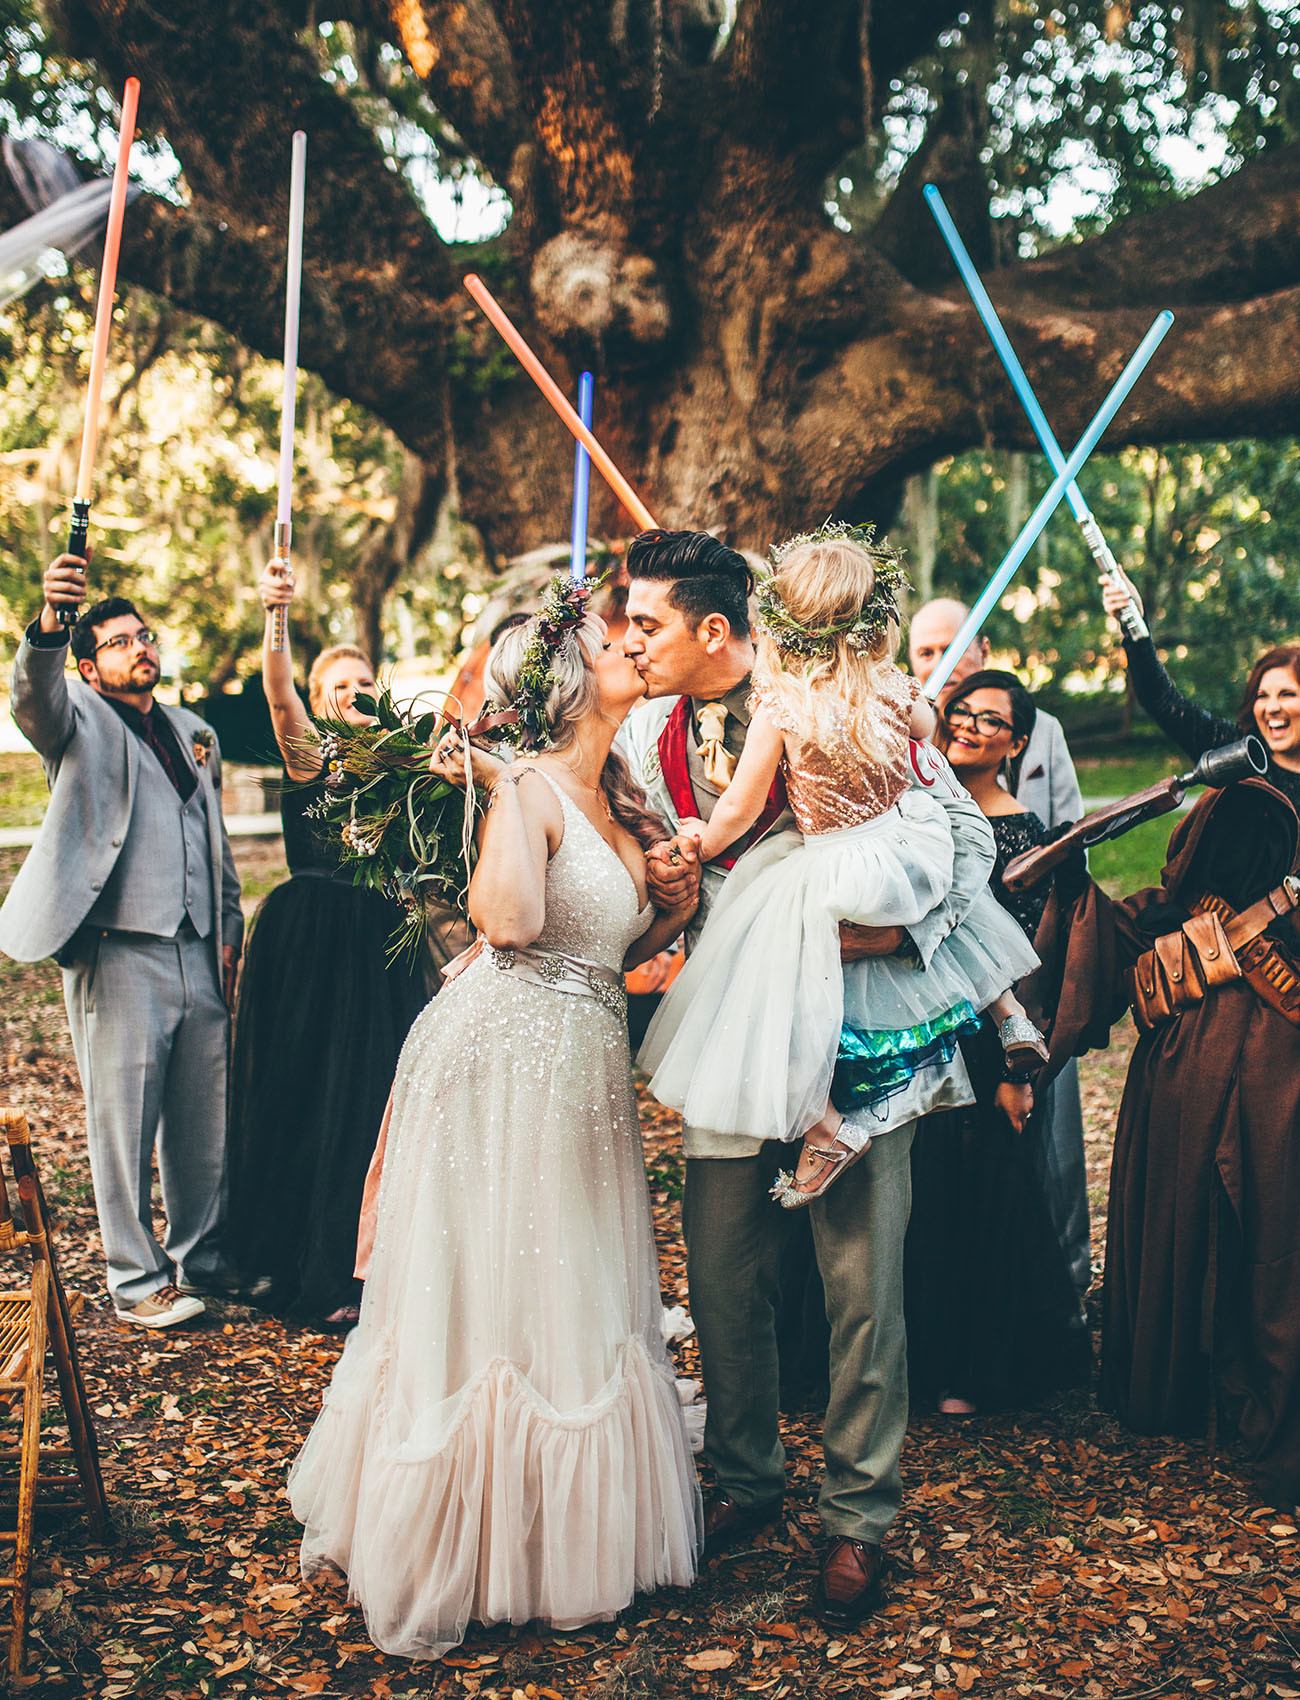 Star Wars Hochzeit  e With the Force An Out of this World Star Wars Themed